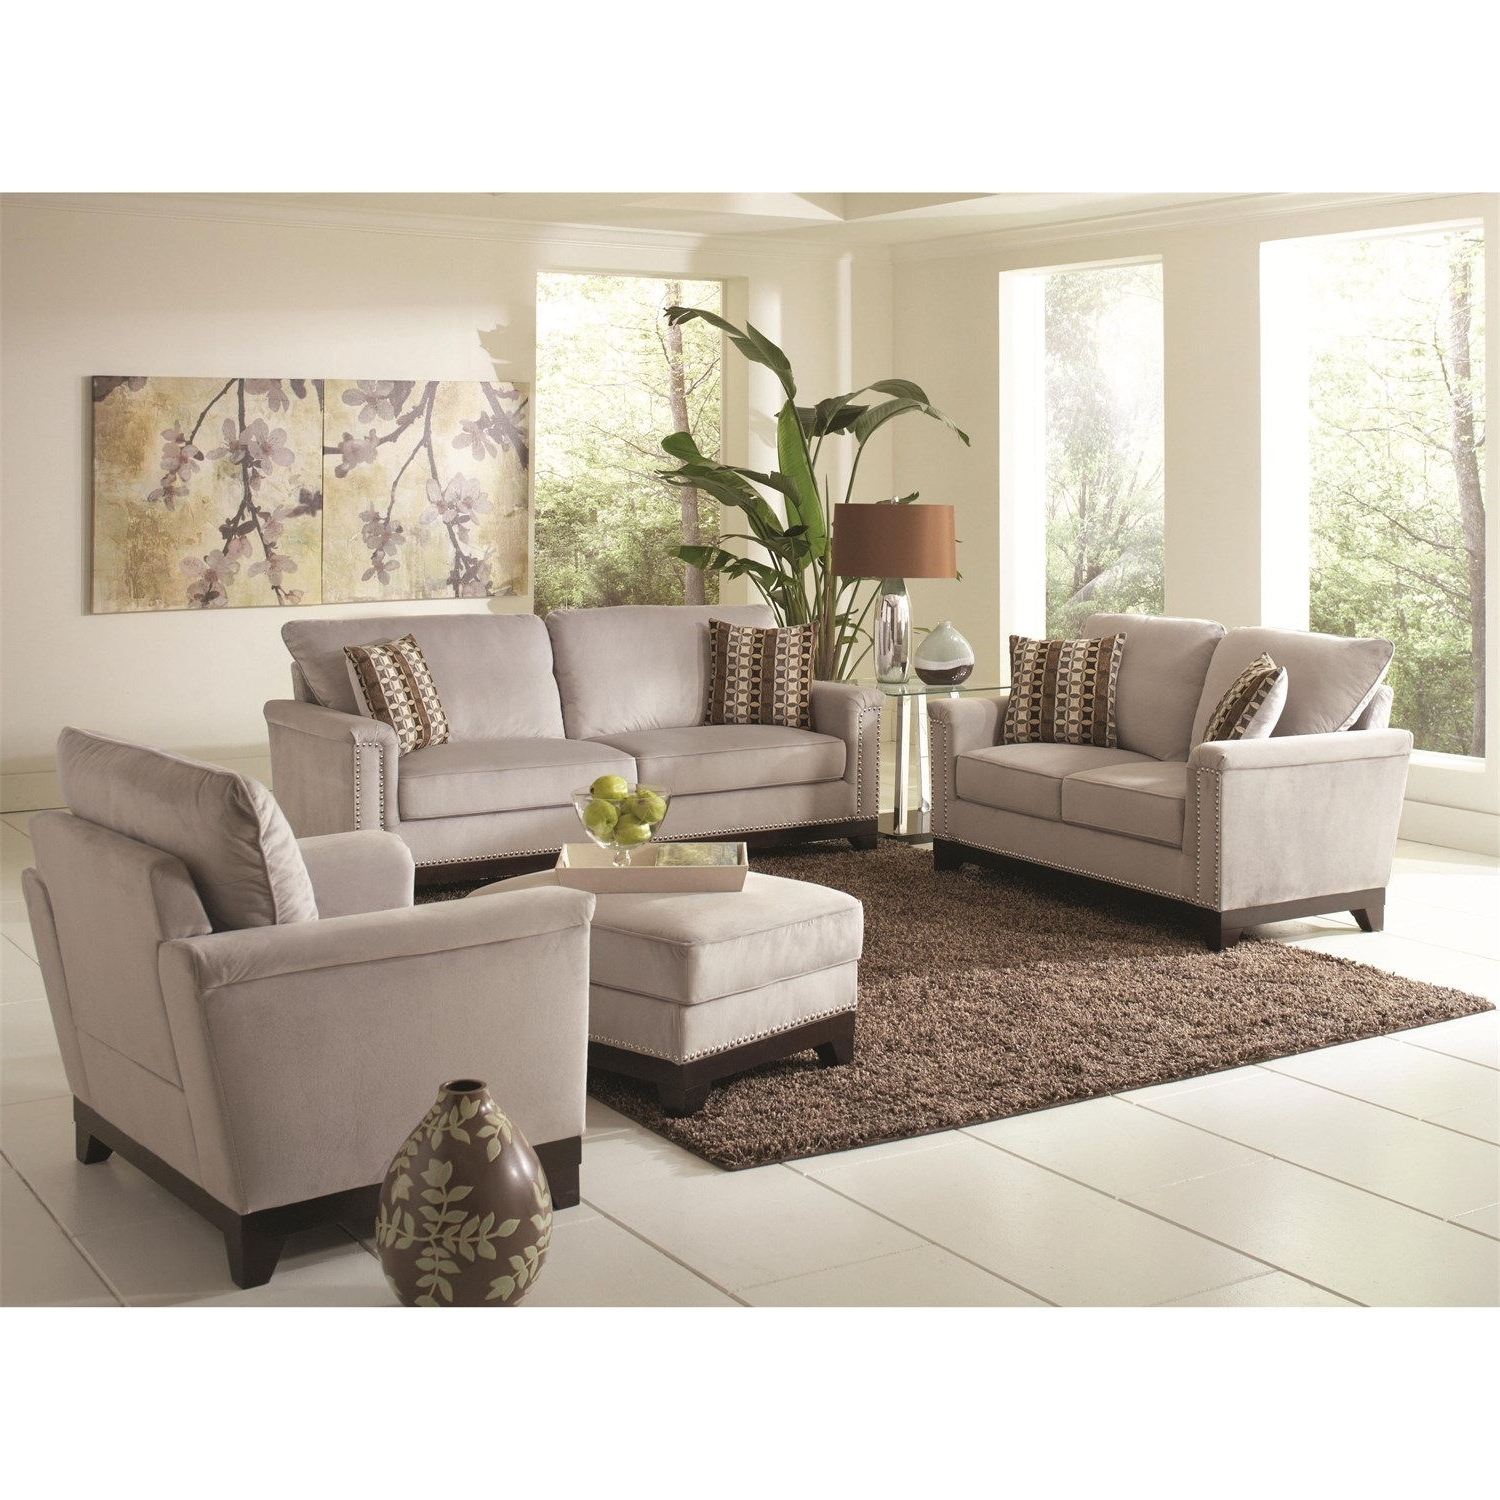 Furniture : Tufted Leather Sofa Brown Sofa Bed On Sale Edmonton Regarding Most Up To Date Ottawa Sale Sectional Sofas (View 3 of 20)